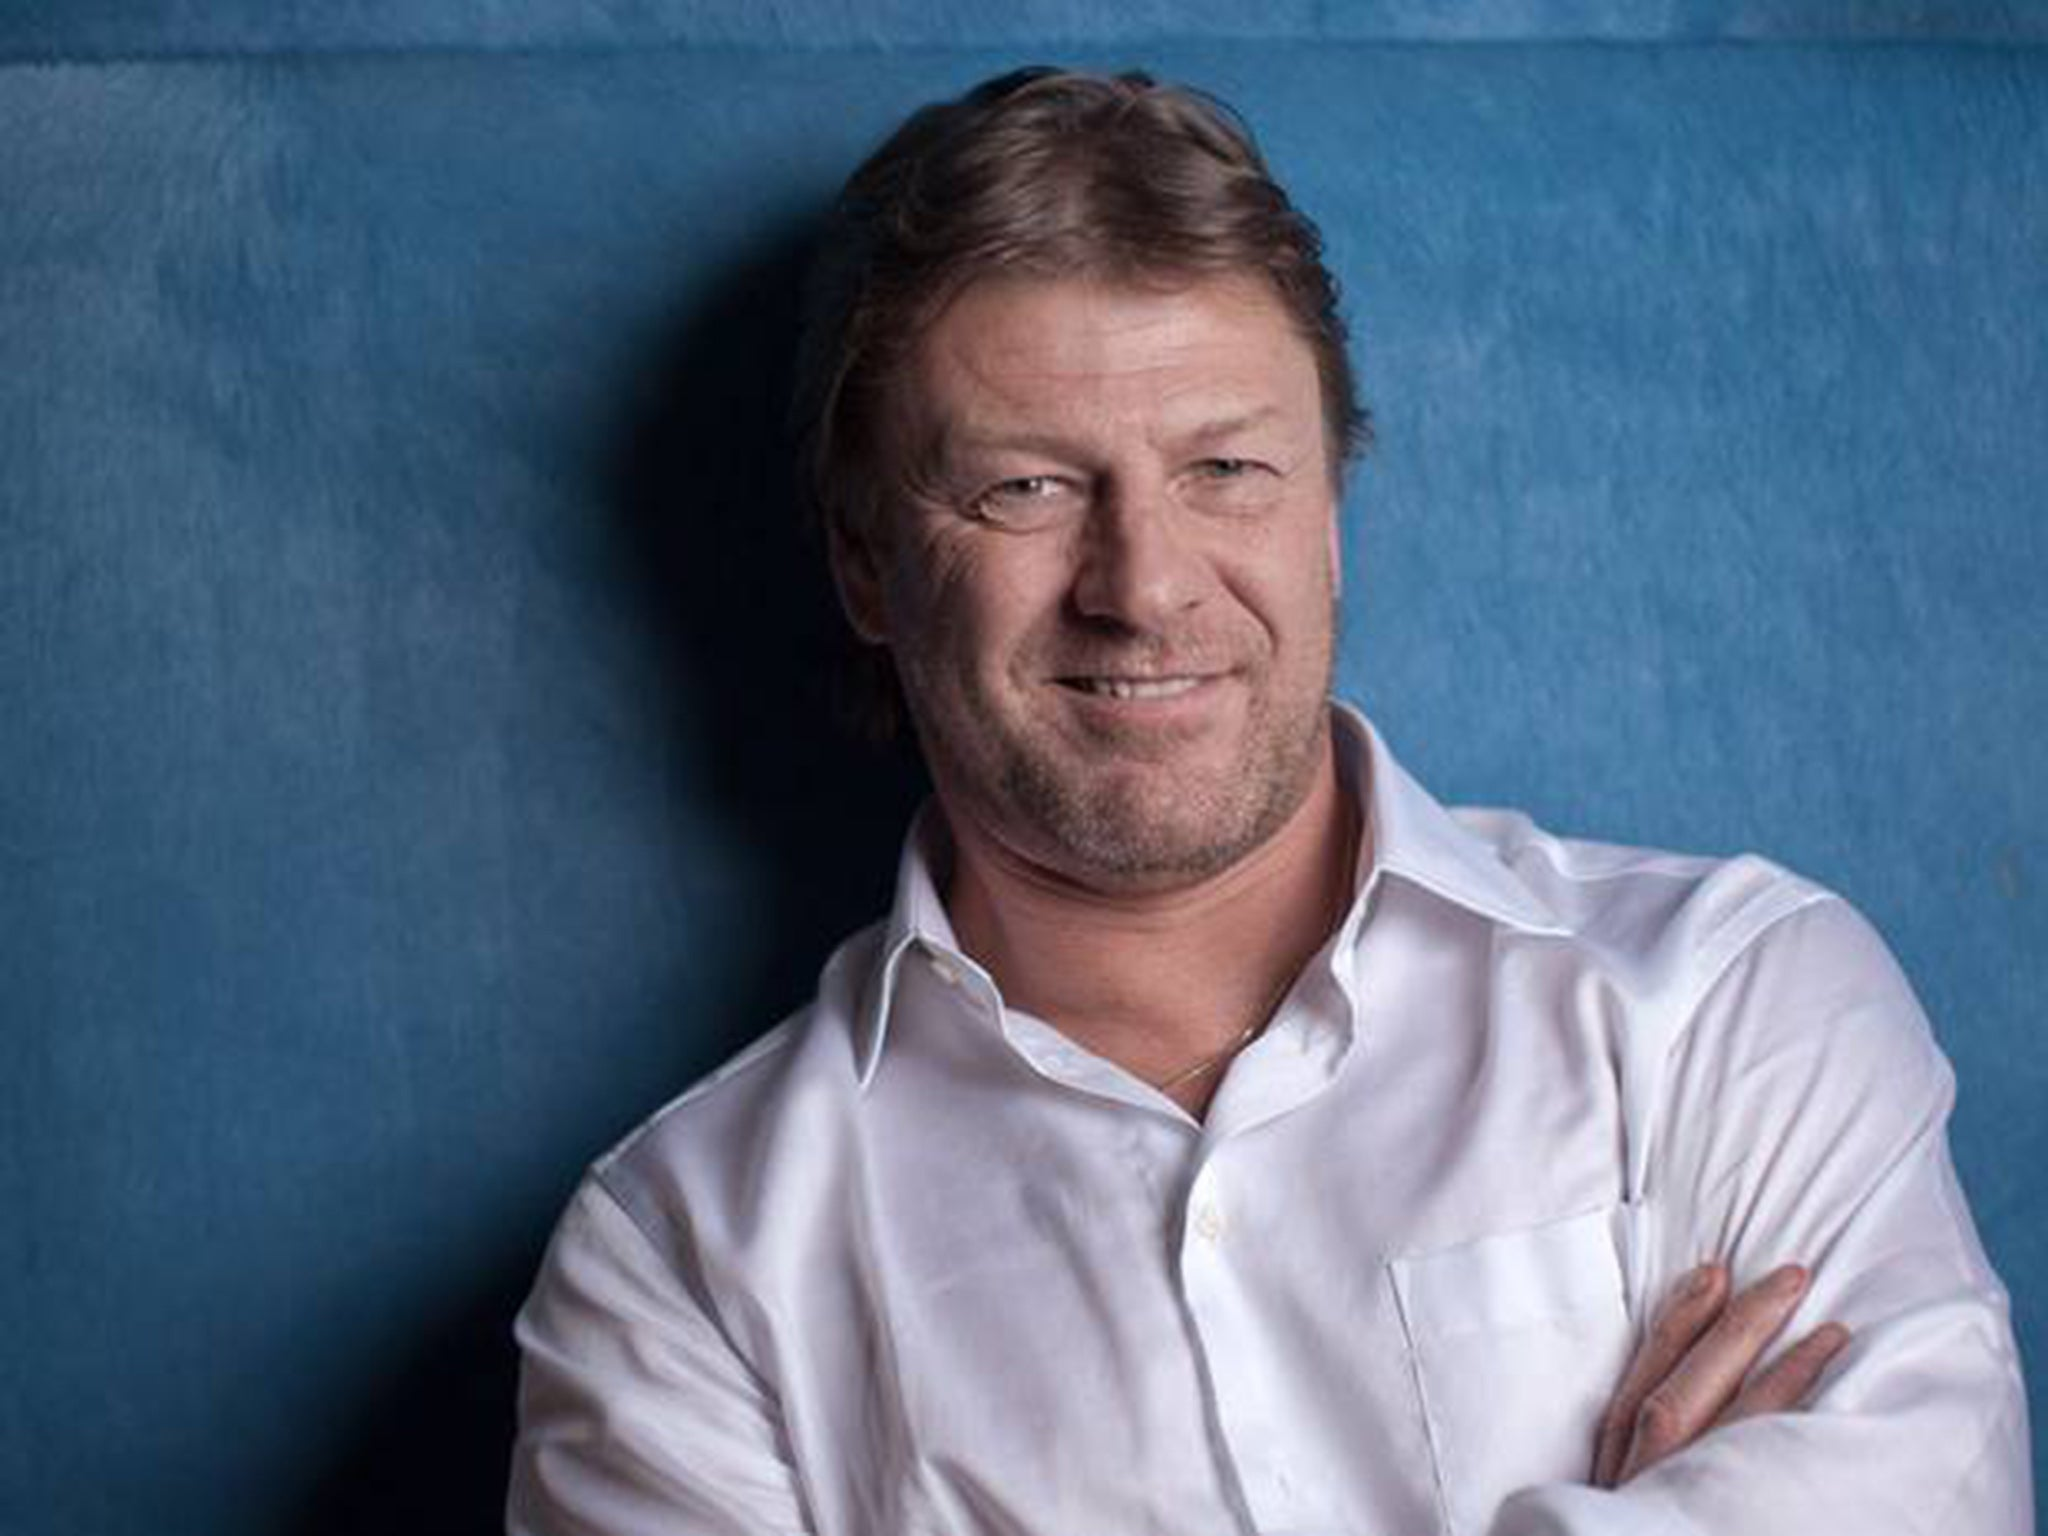 sean bean ripsean bean young, sean bean instagram, sean bean news, sean bean 2017, sean bean gif, sean bean films, sean bean doom, sean bean kinopoisk, sean bean filmography, sean bean height, sean bean daughters, sean bean vk, sean bean oblivion, sean bean voice, sean bean chris hemsworth, sean bean on waterloo, sean bean rip, sean bean maktoub, sean bean net worth, sean bean movies